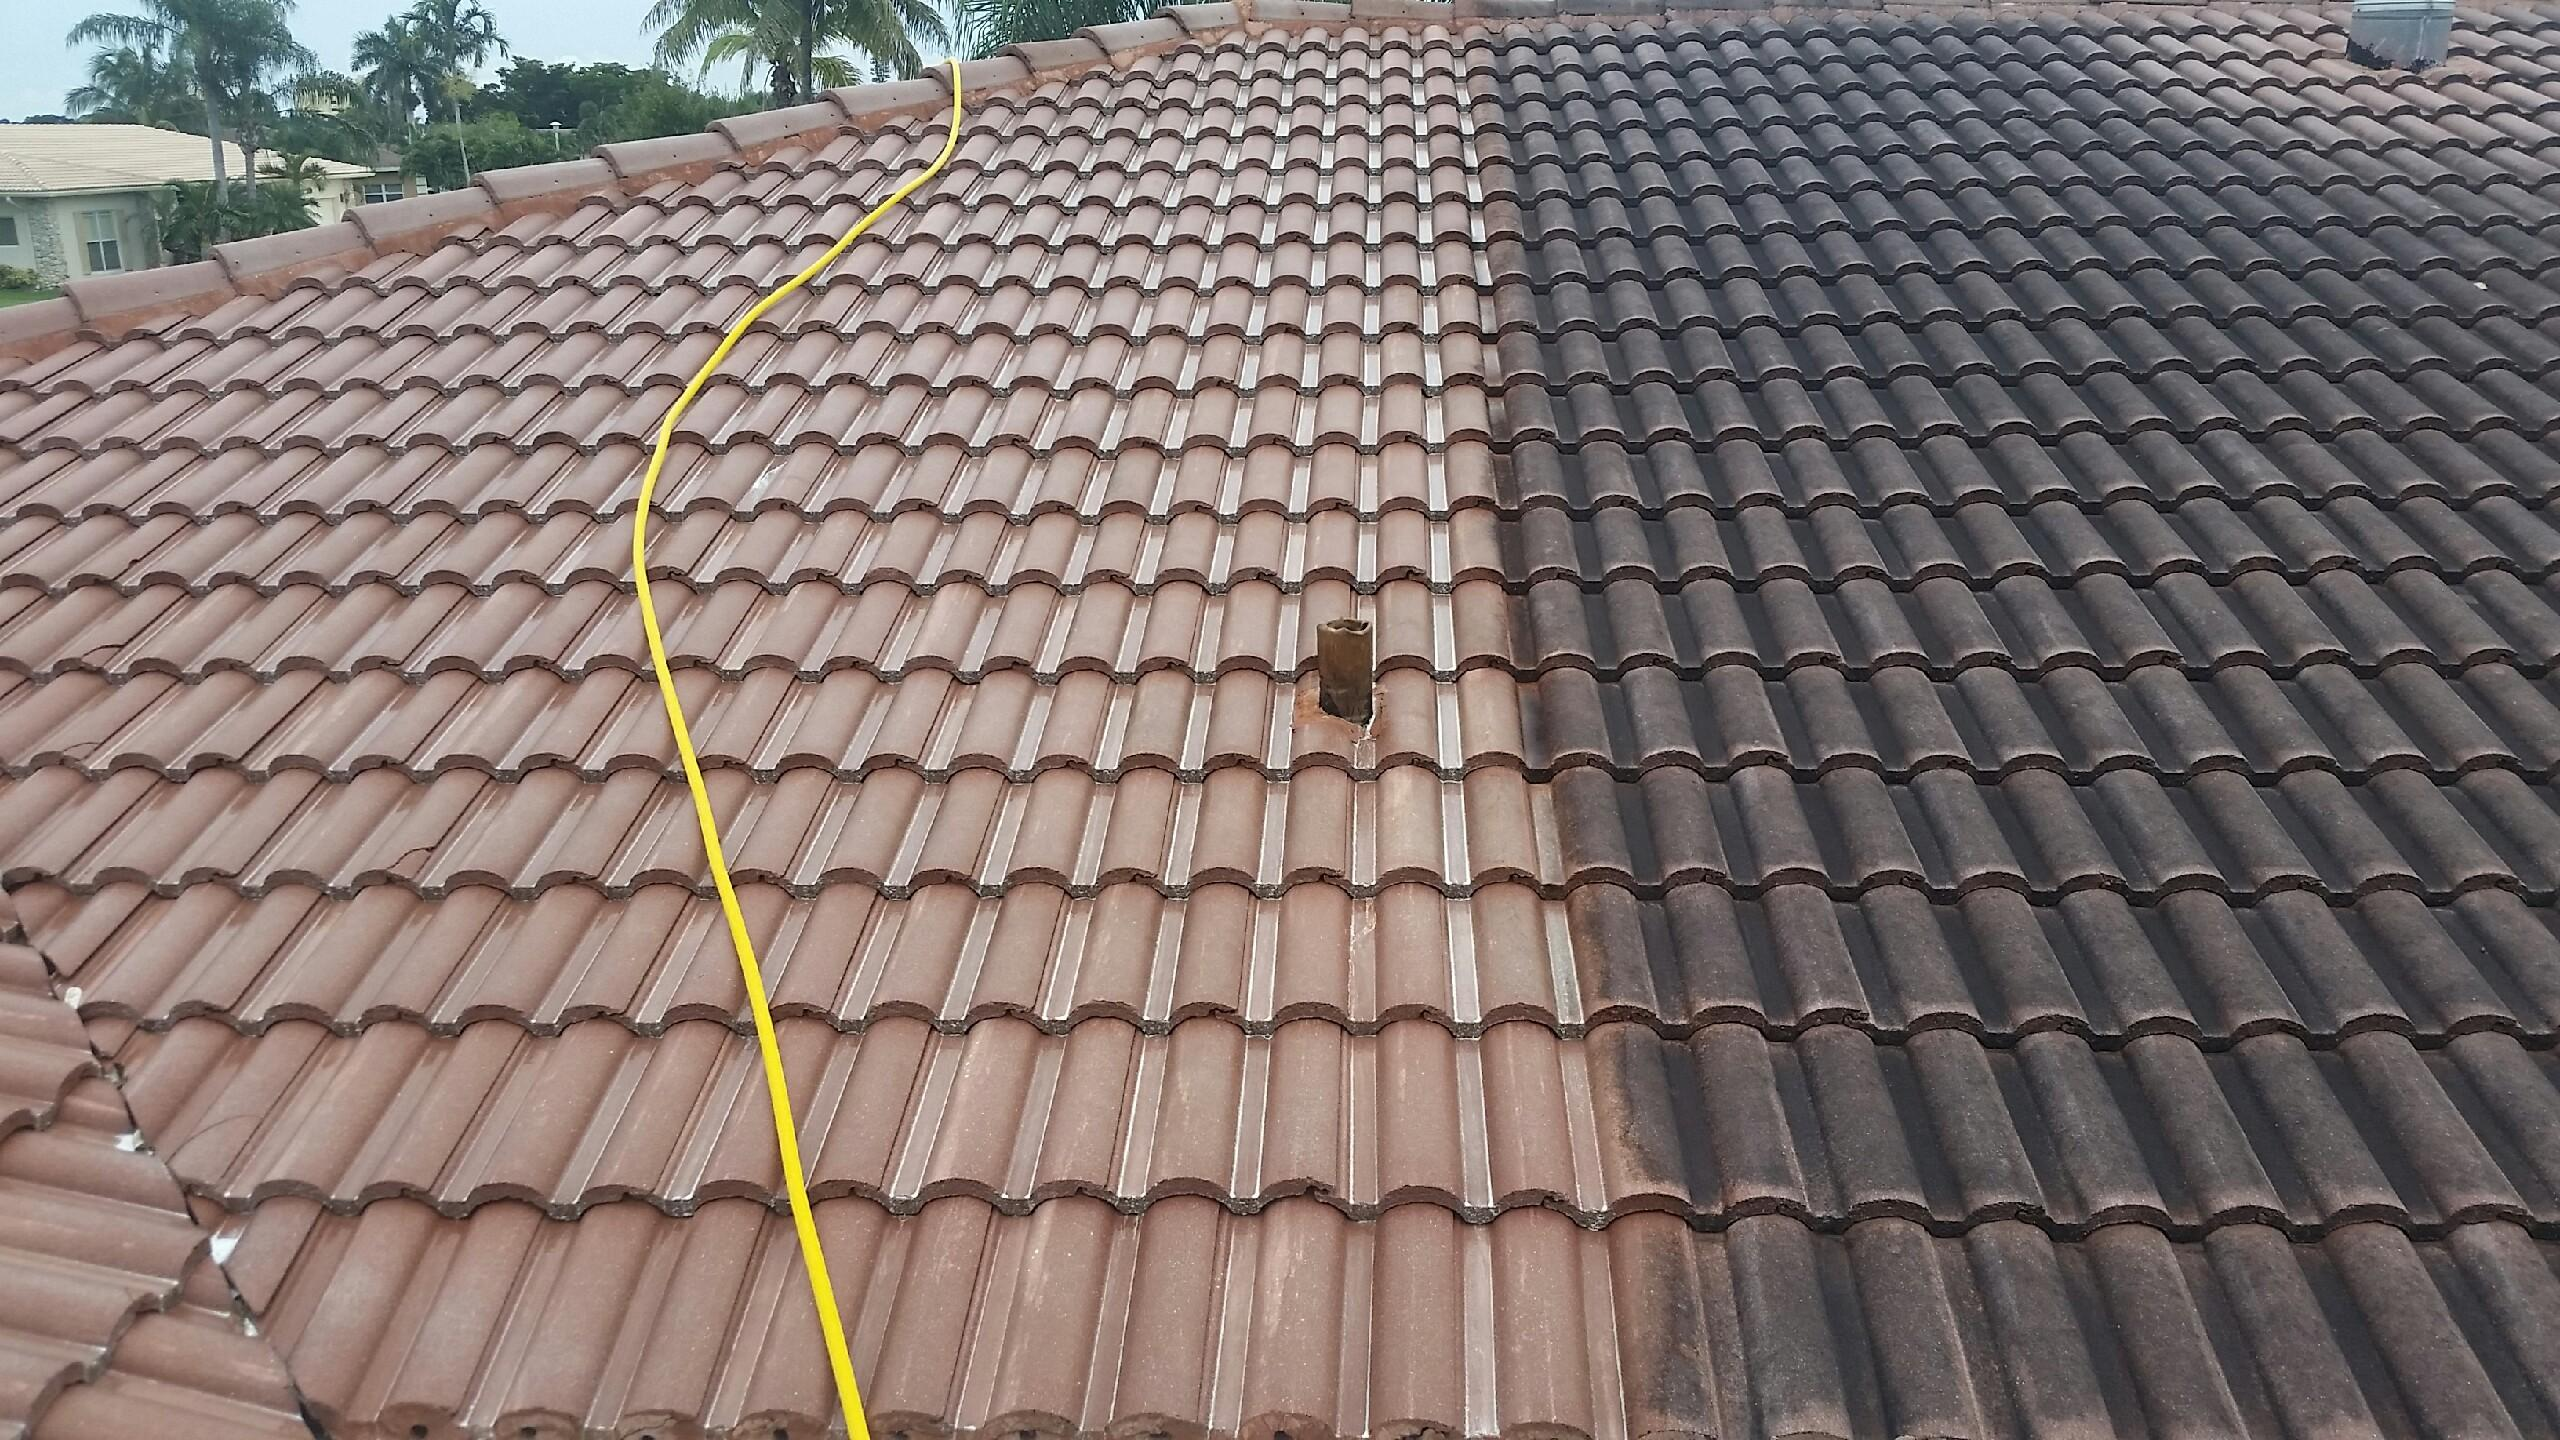 Safe roof cleaning pressure washing the woodlands commercial residential - Using water pressure roof cleaning ...